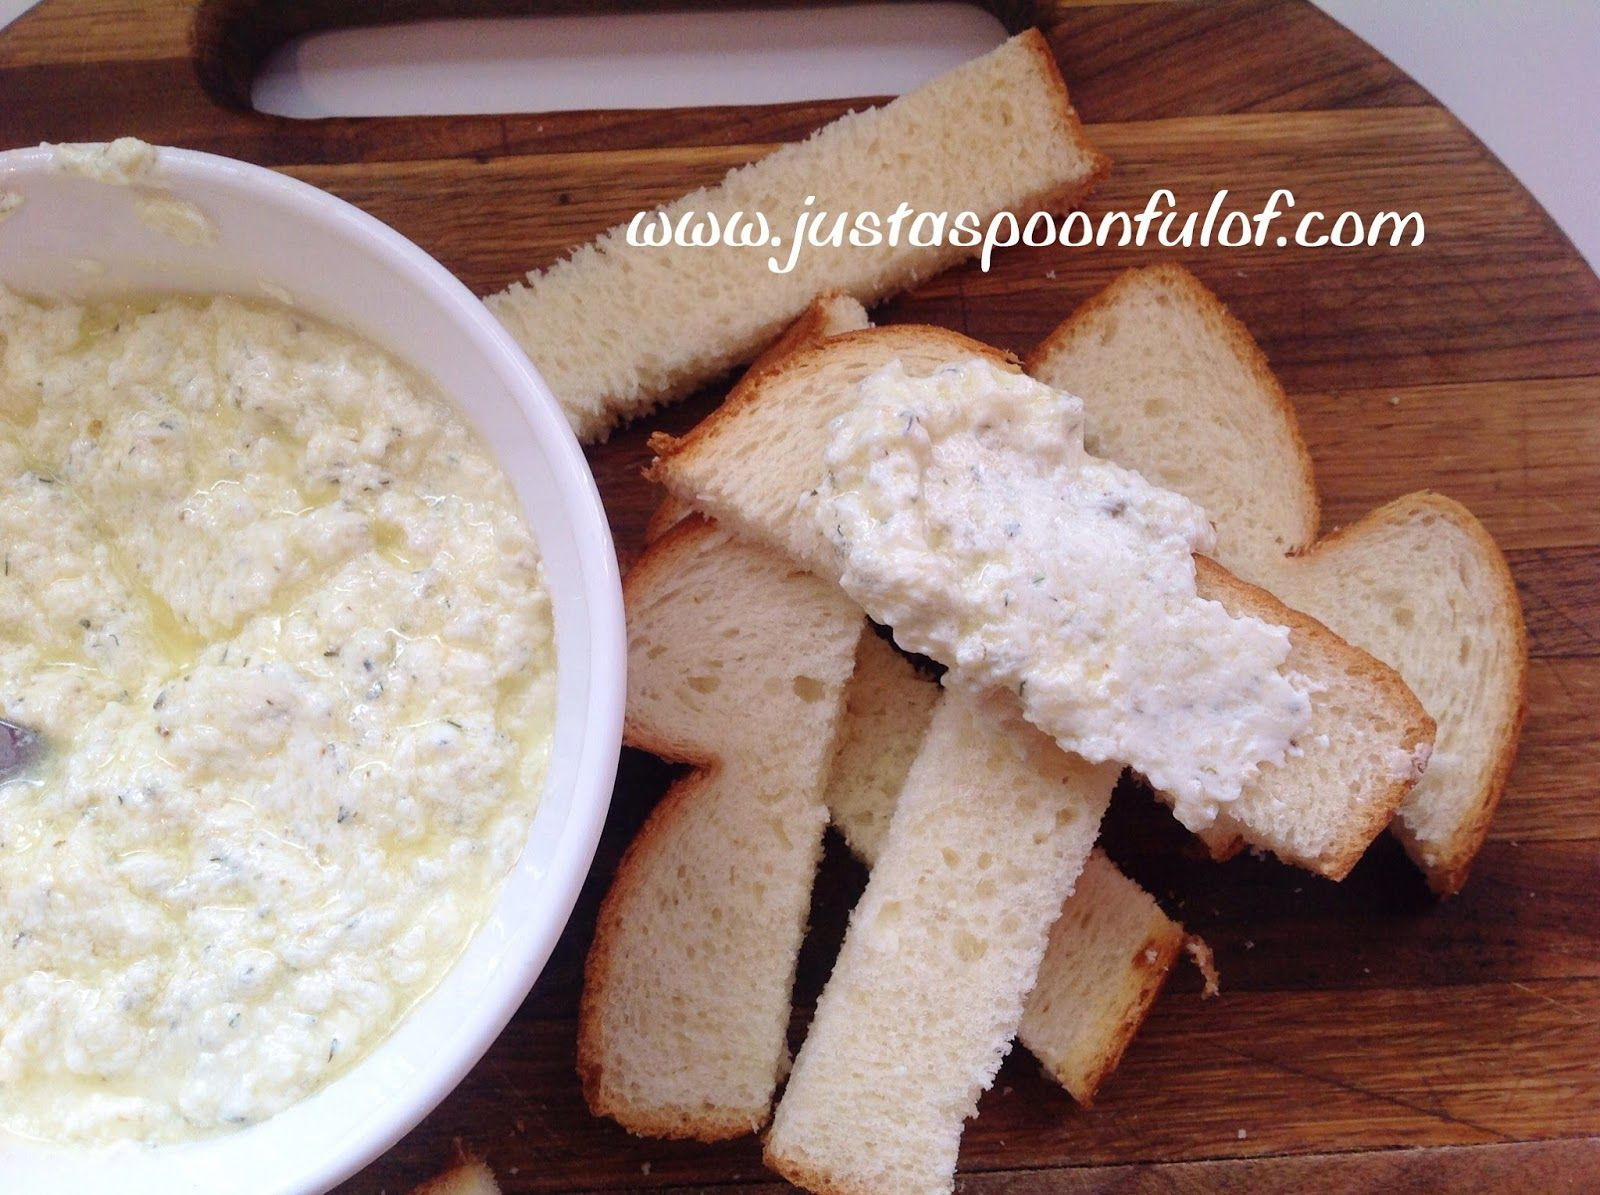 Just a Spoonful of: Warm Garlic Cheese Spread